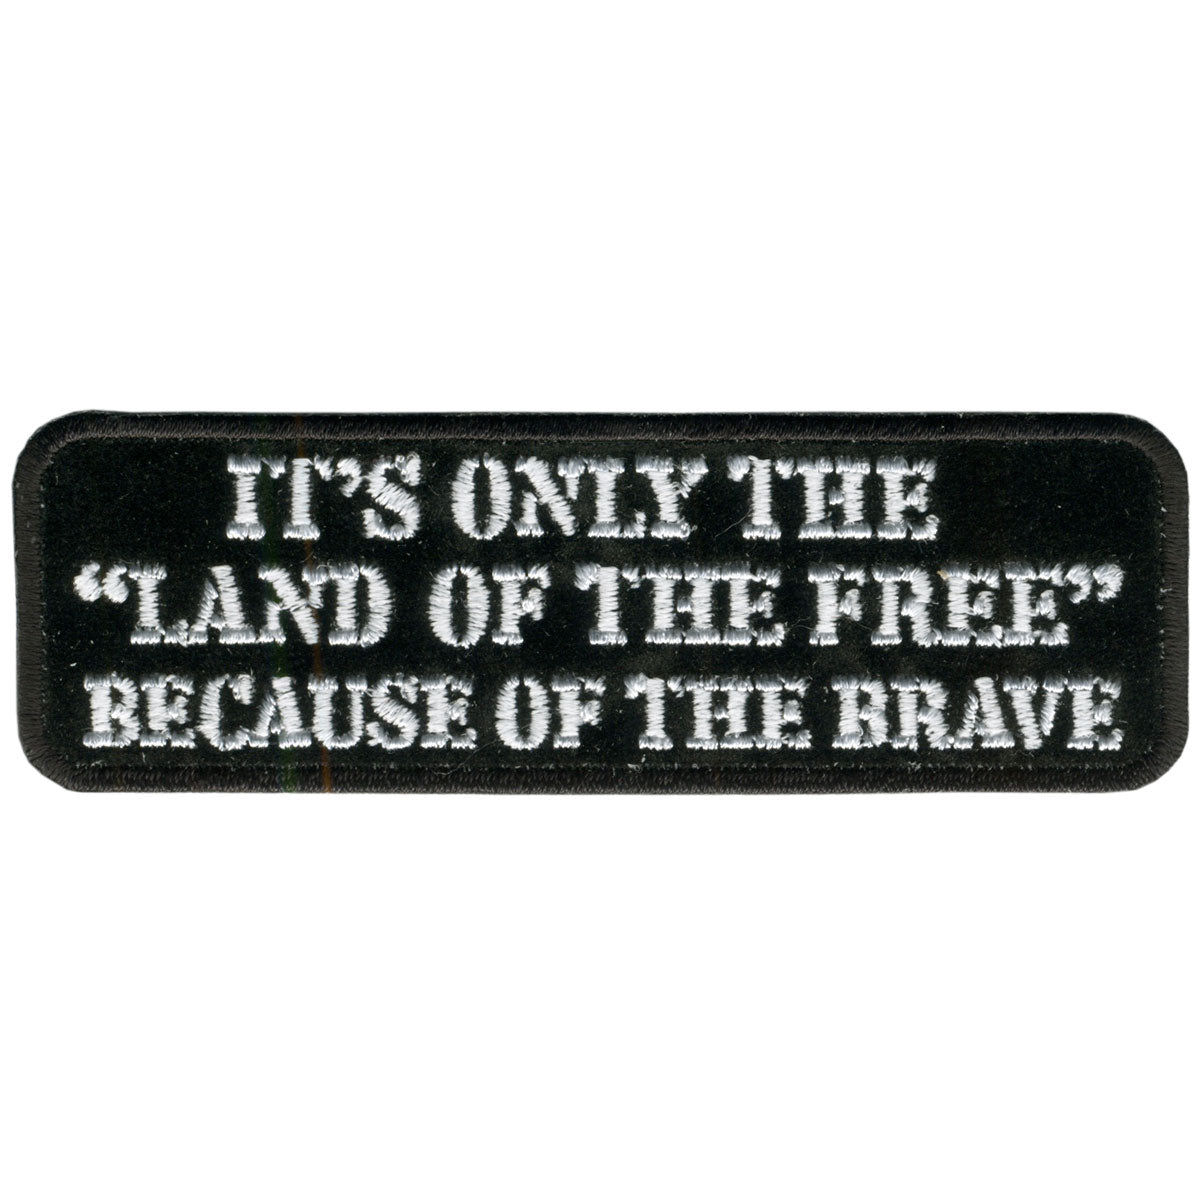 "Hot Leathers Land of the Free 4"" x 1"" Patch"